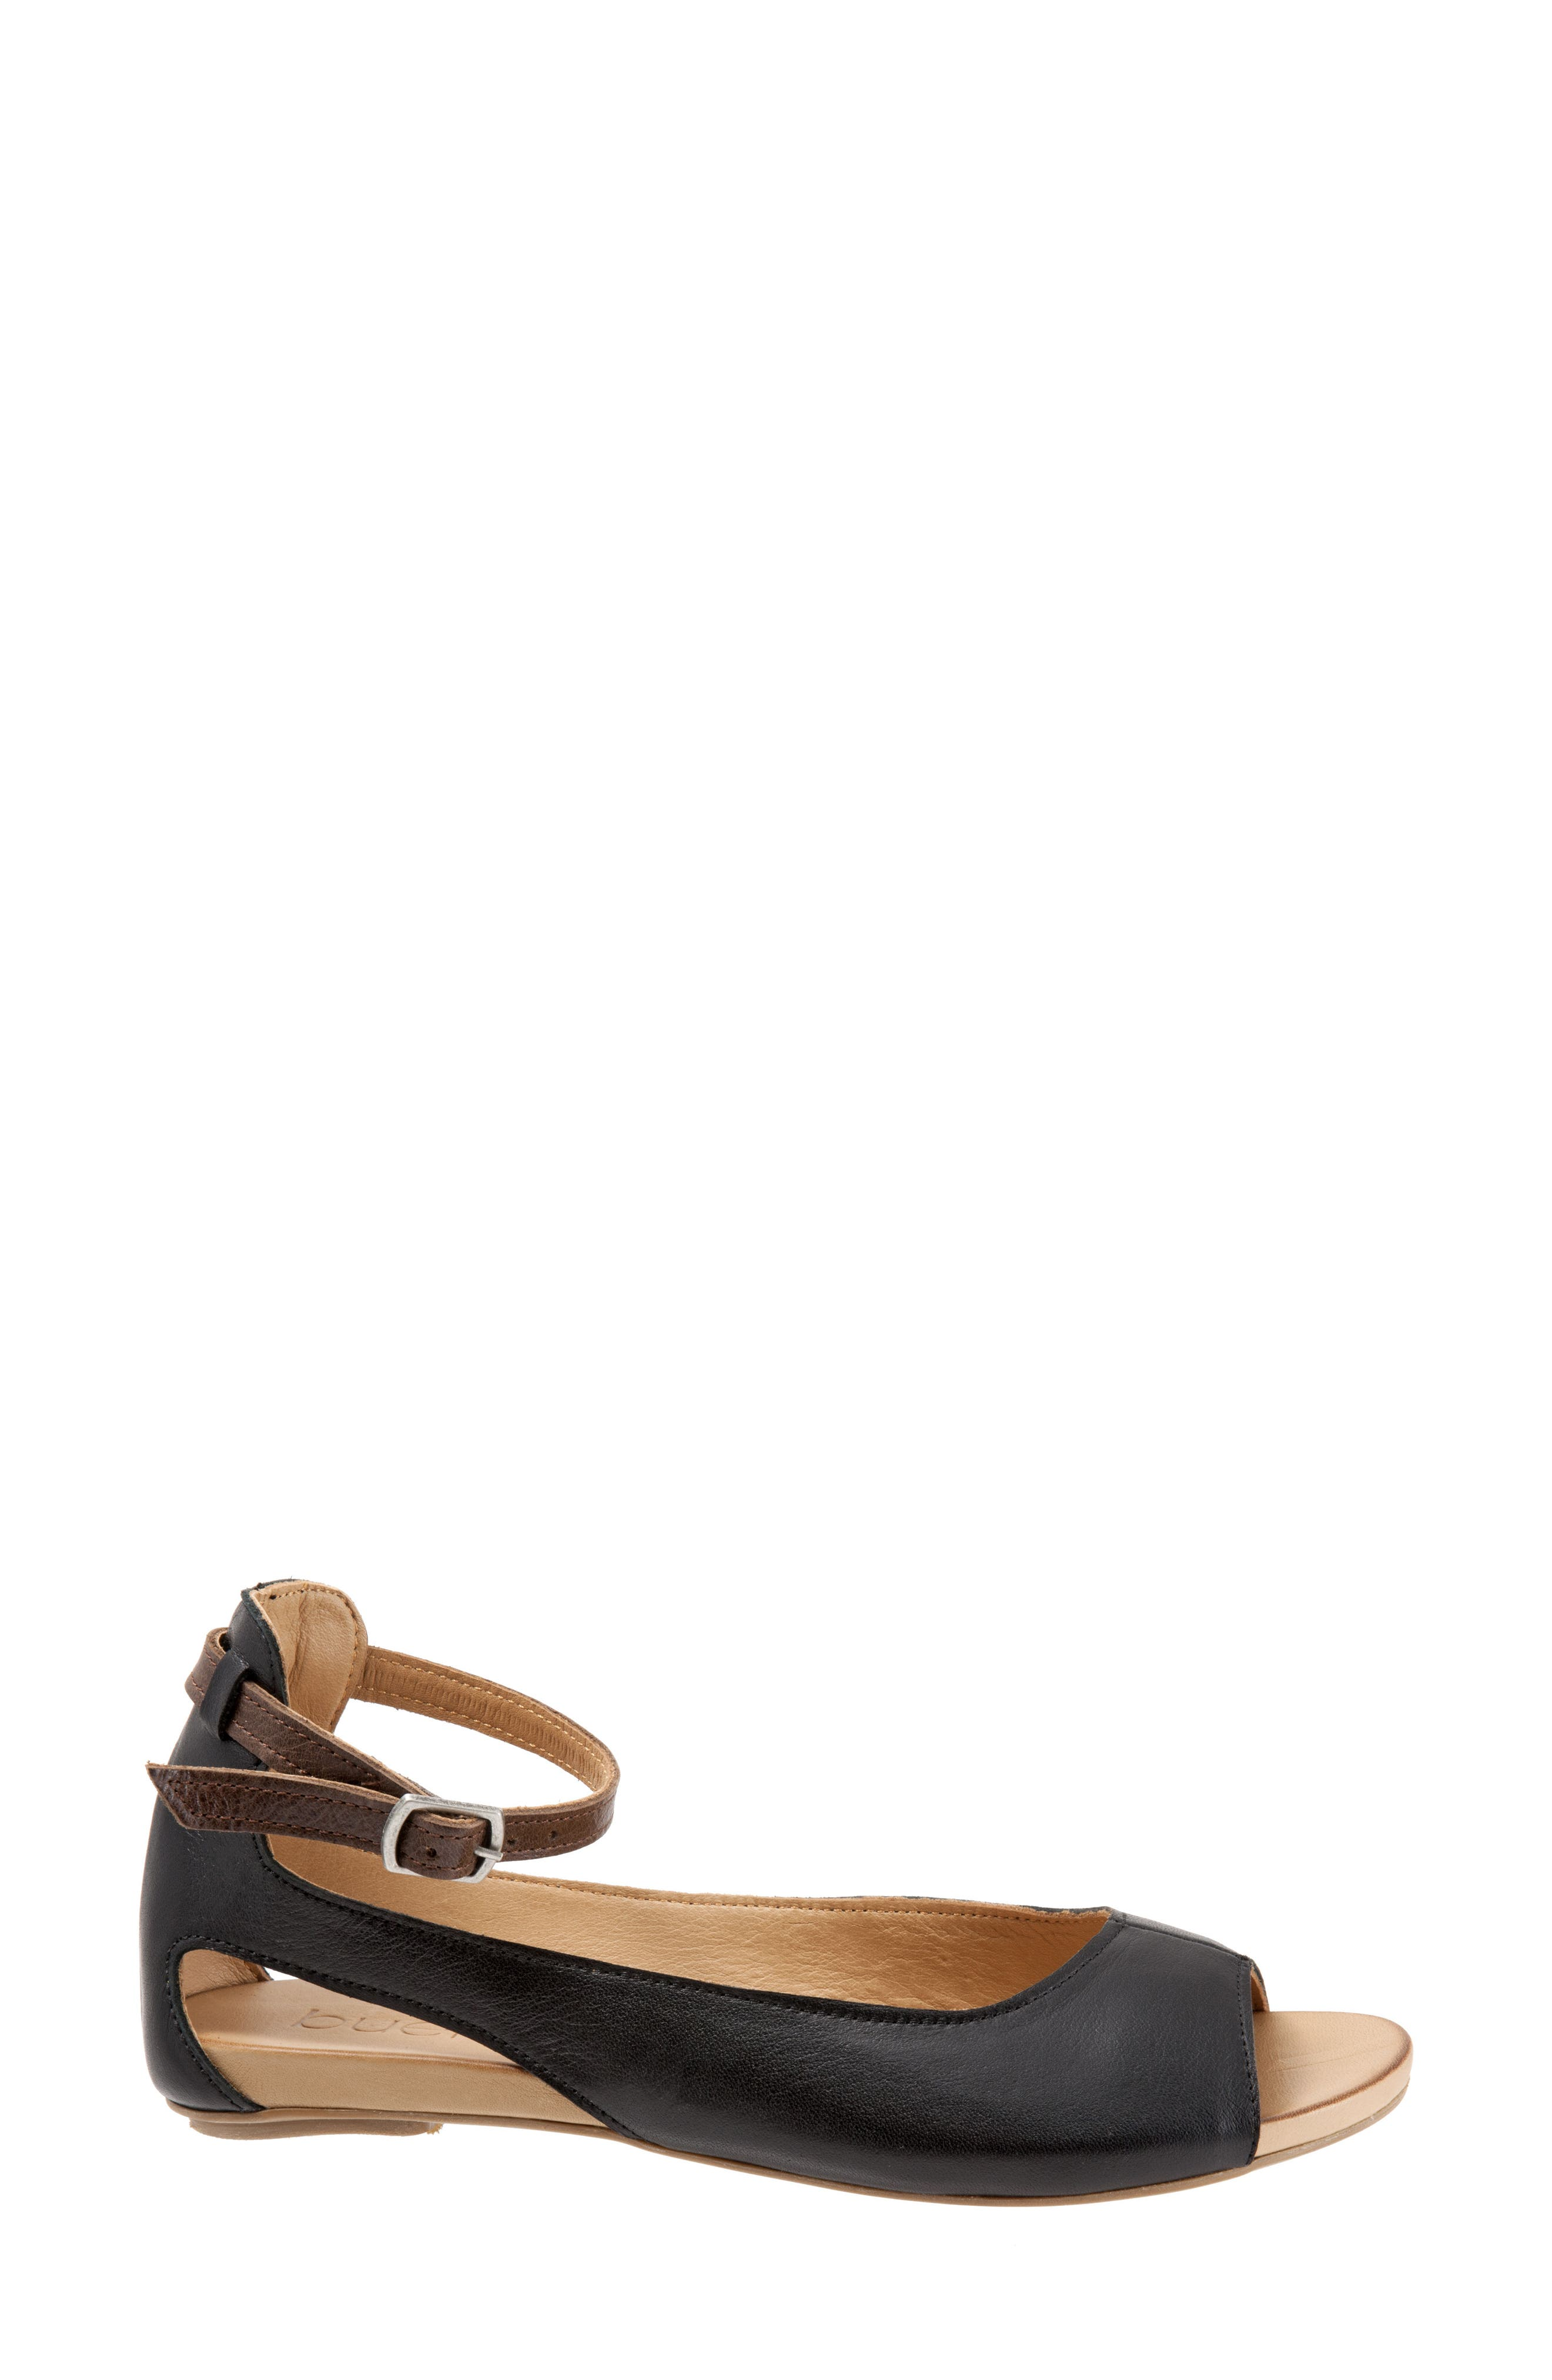 Donna Ankle Strap Sandal,                             Alternate thumbnail 3, color,                             BLACK LEATHER